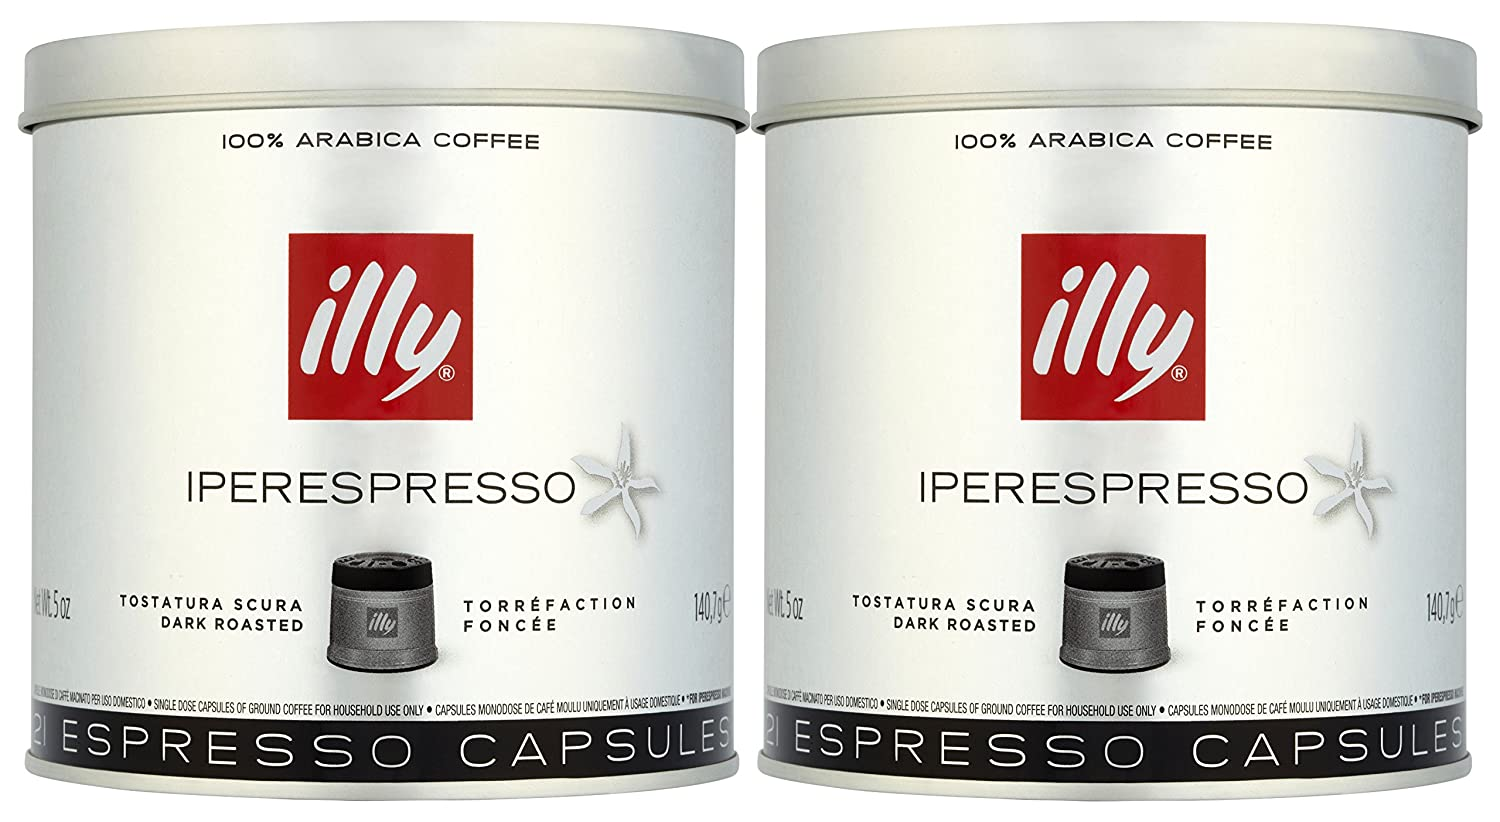 illy Dark Roast Iperespresso Coffee 21 Capsules (Pack of 2, Total 42 Capsules): Amazon.com: Grocery & Gourmet Food